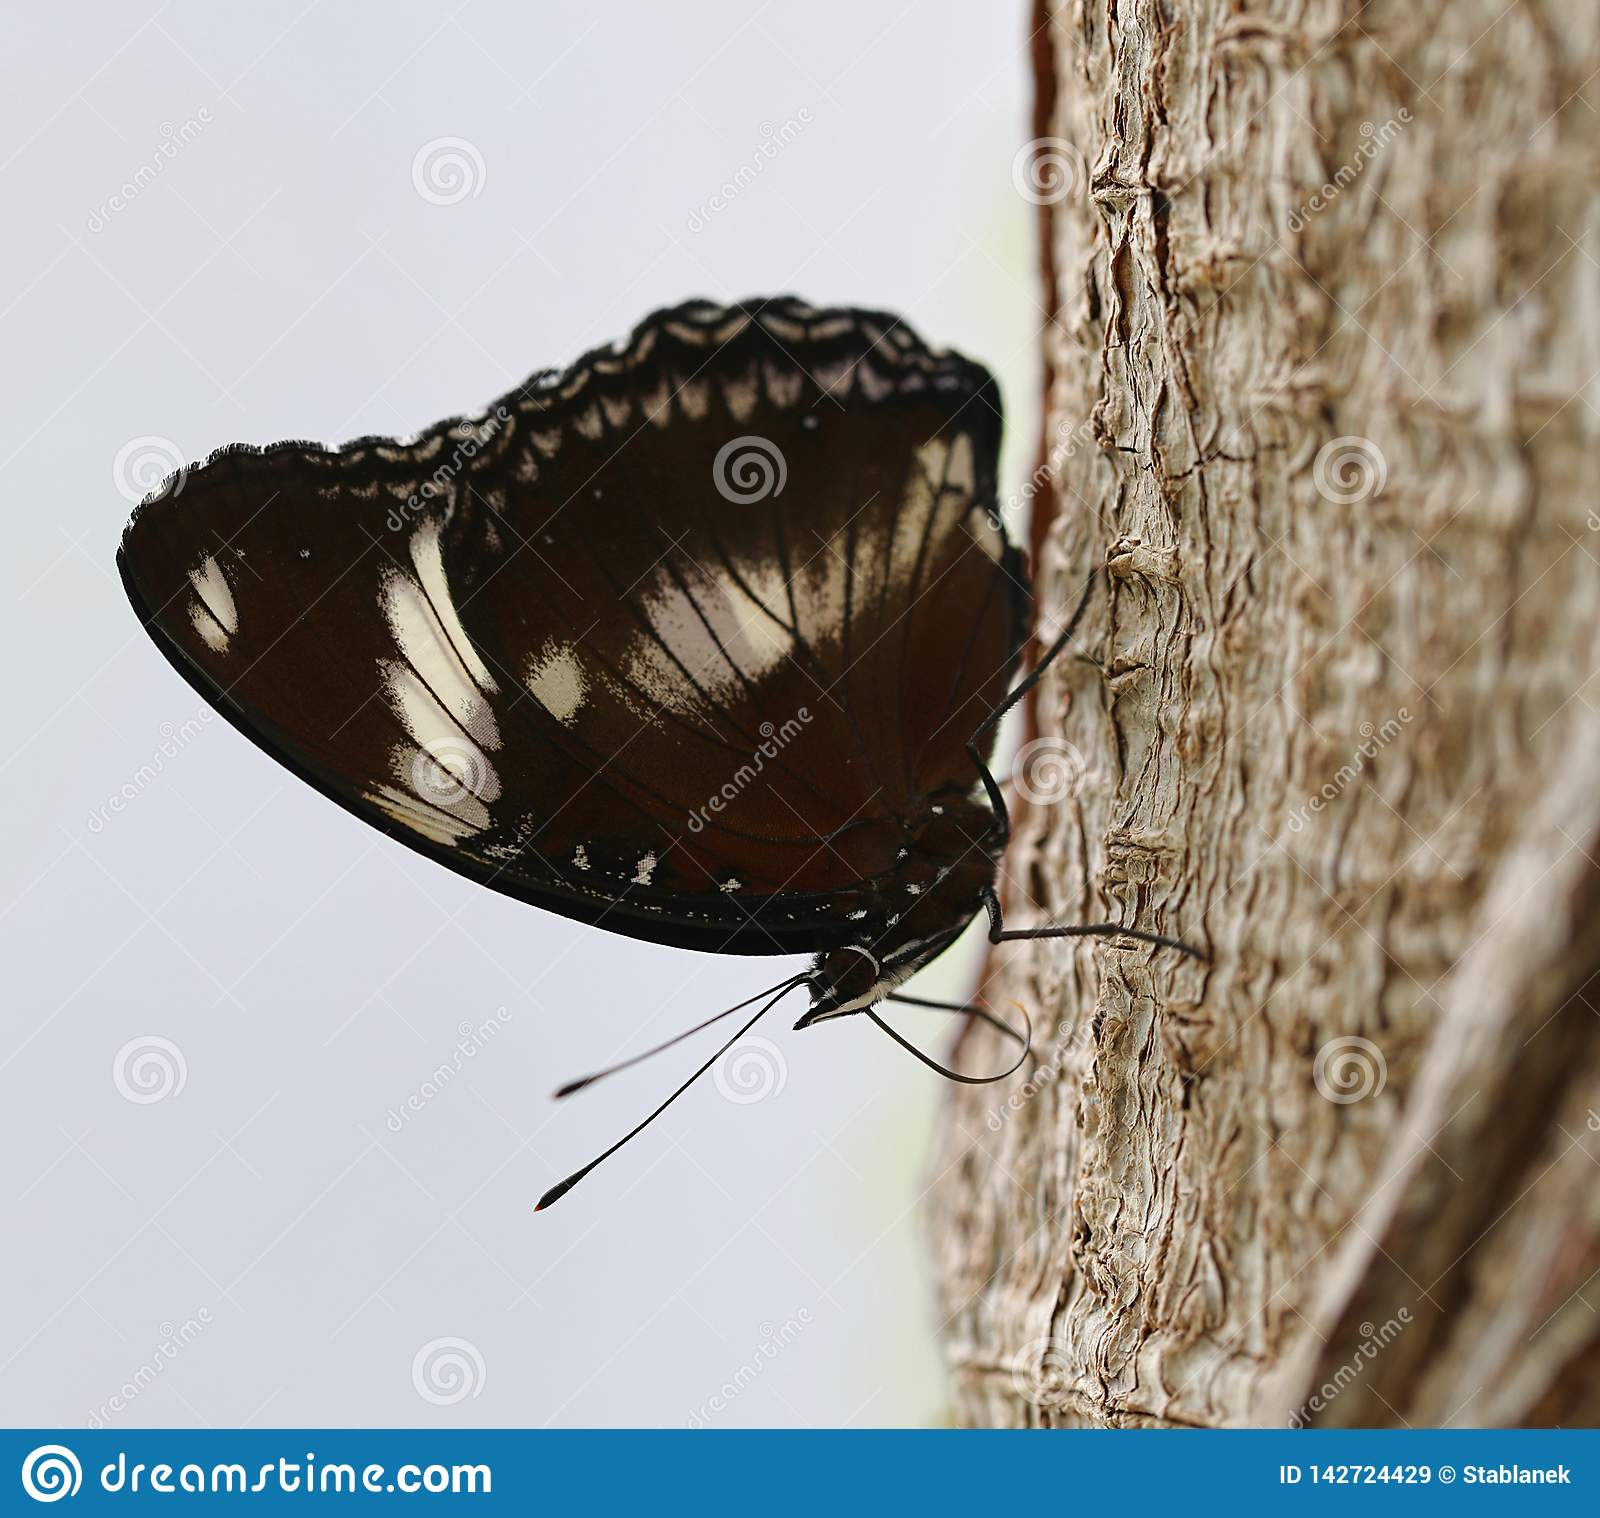 Butterfly sitting on a tree